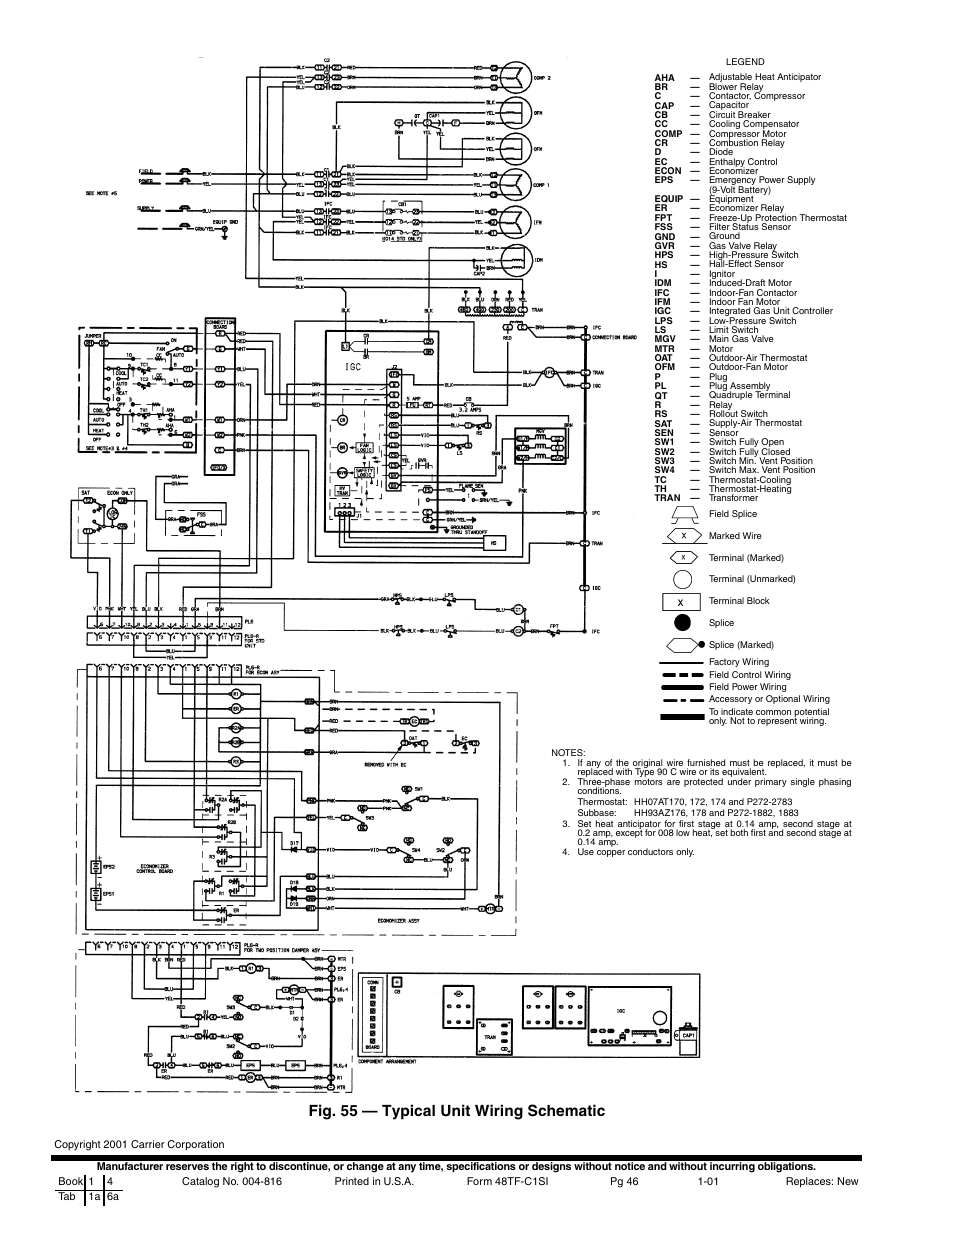 medium resolution of fig 55 typical unit wiring schematic carrier 48tfe008 014 user carrier rooftop unit wiring diagram 55